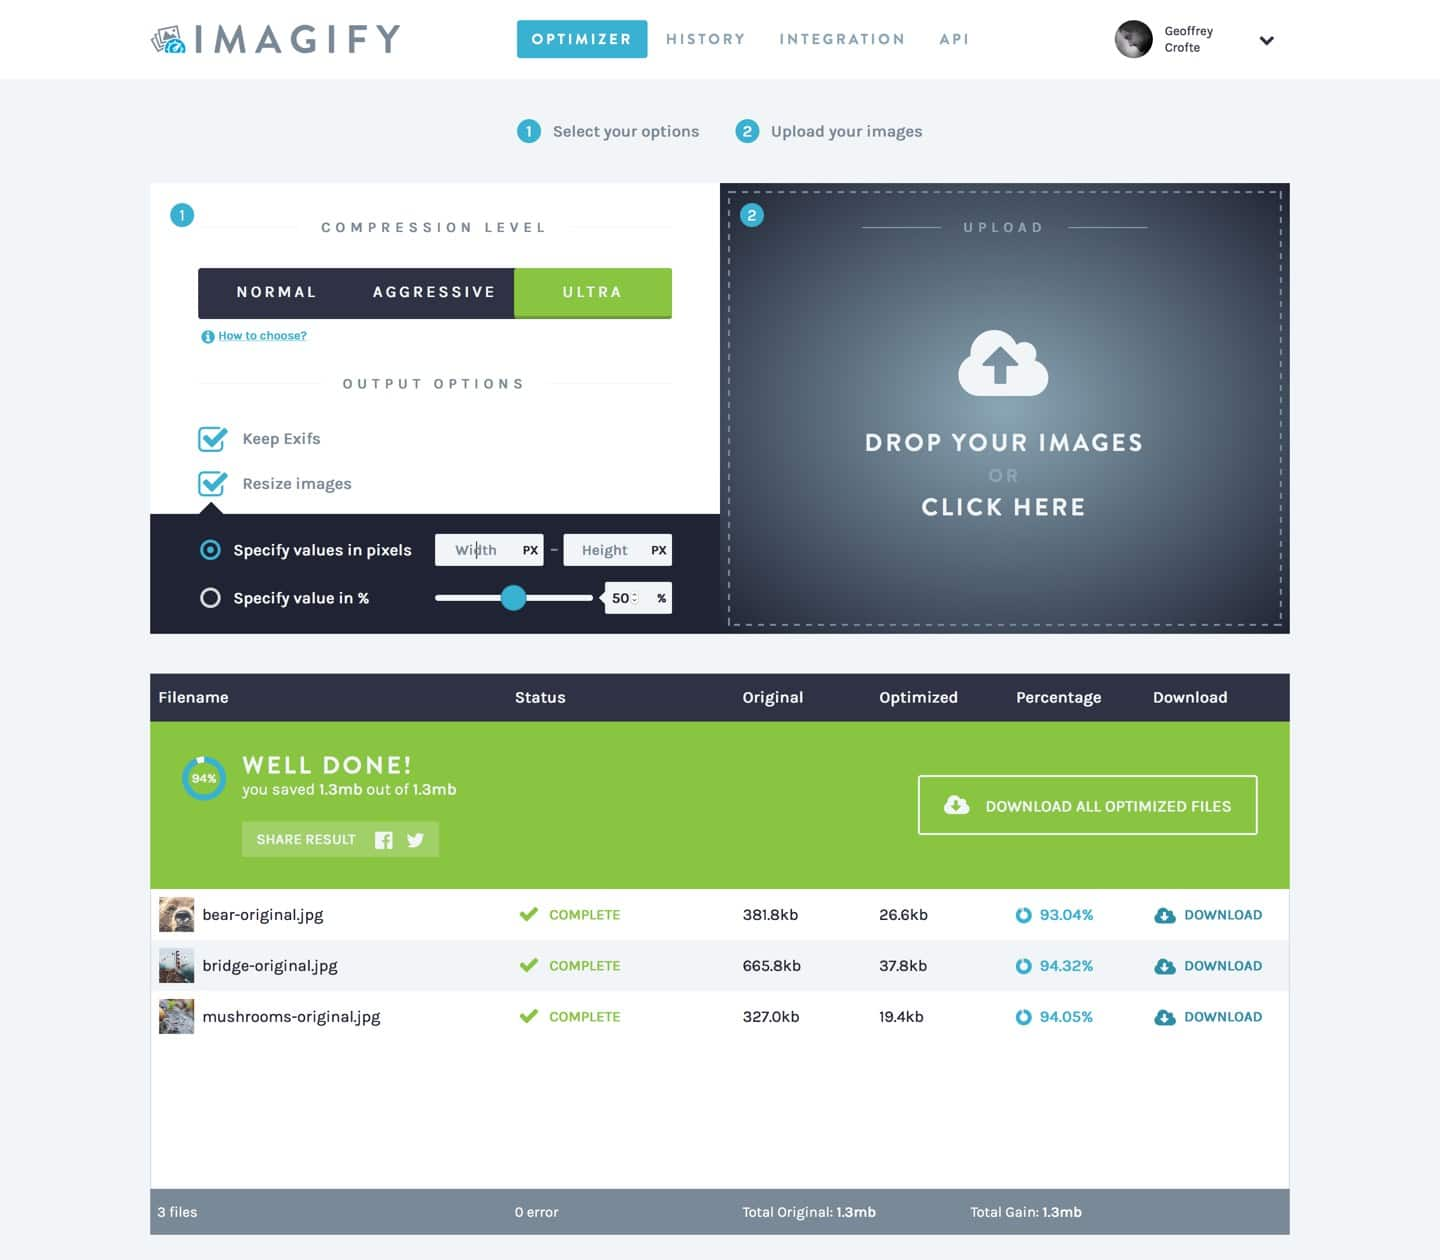 imagify-app-in-action